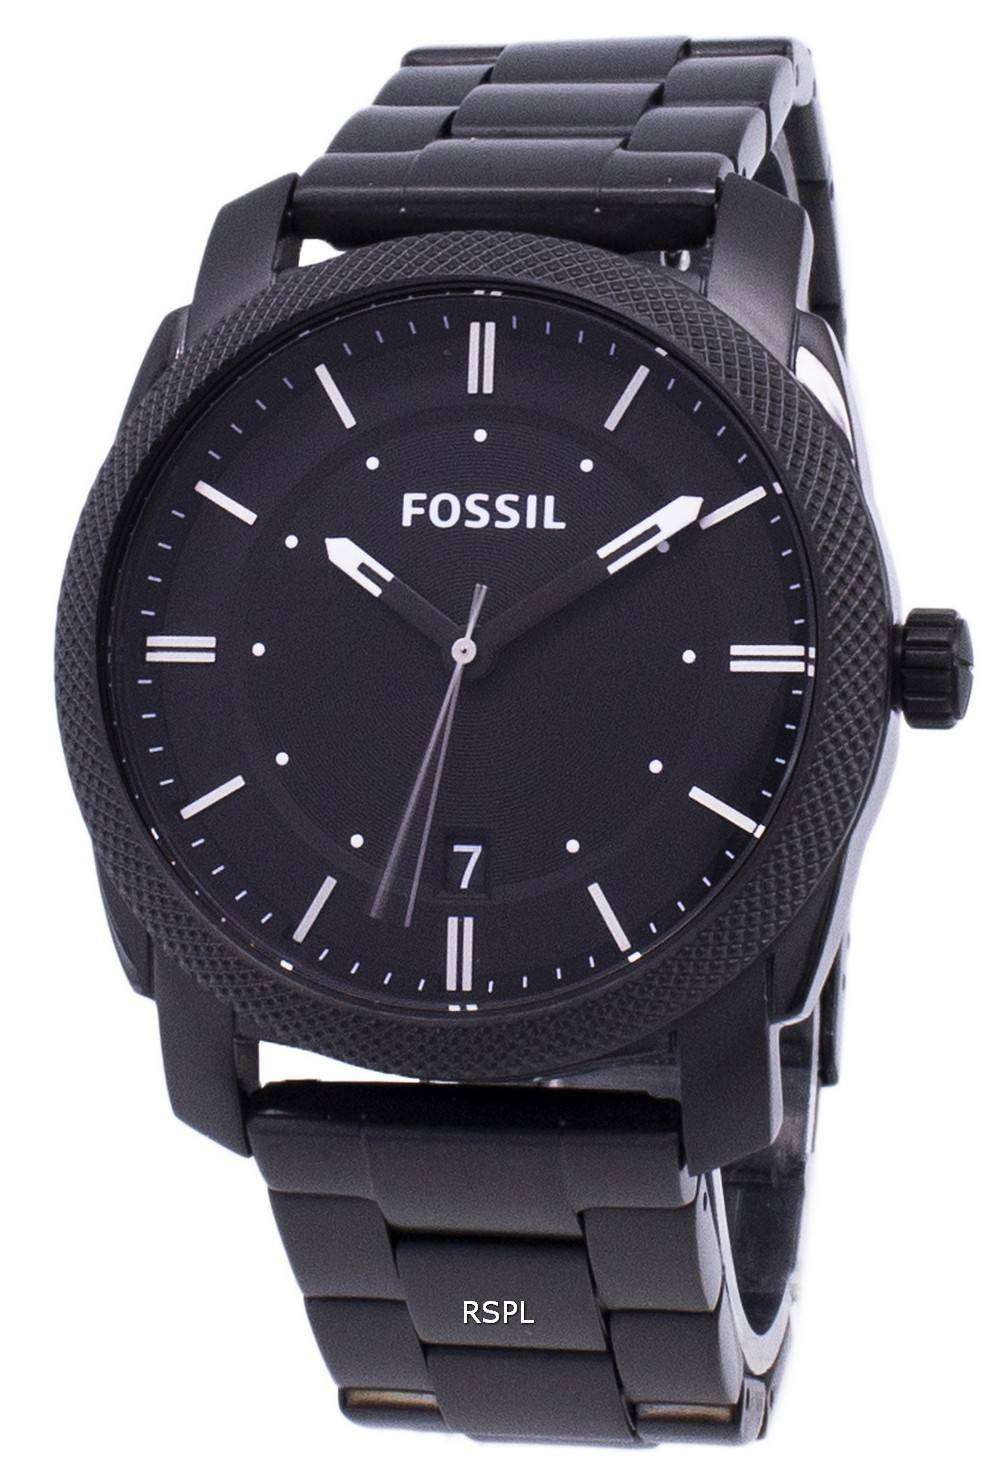 Review Fossil Men's FS4774 Machine Analog Display Analog ...